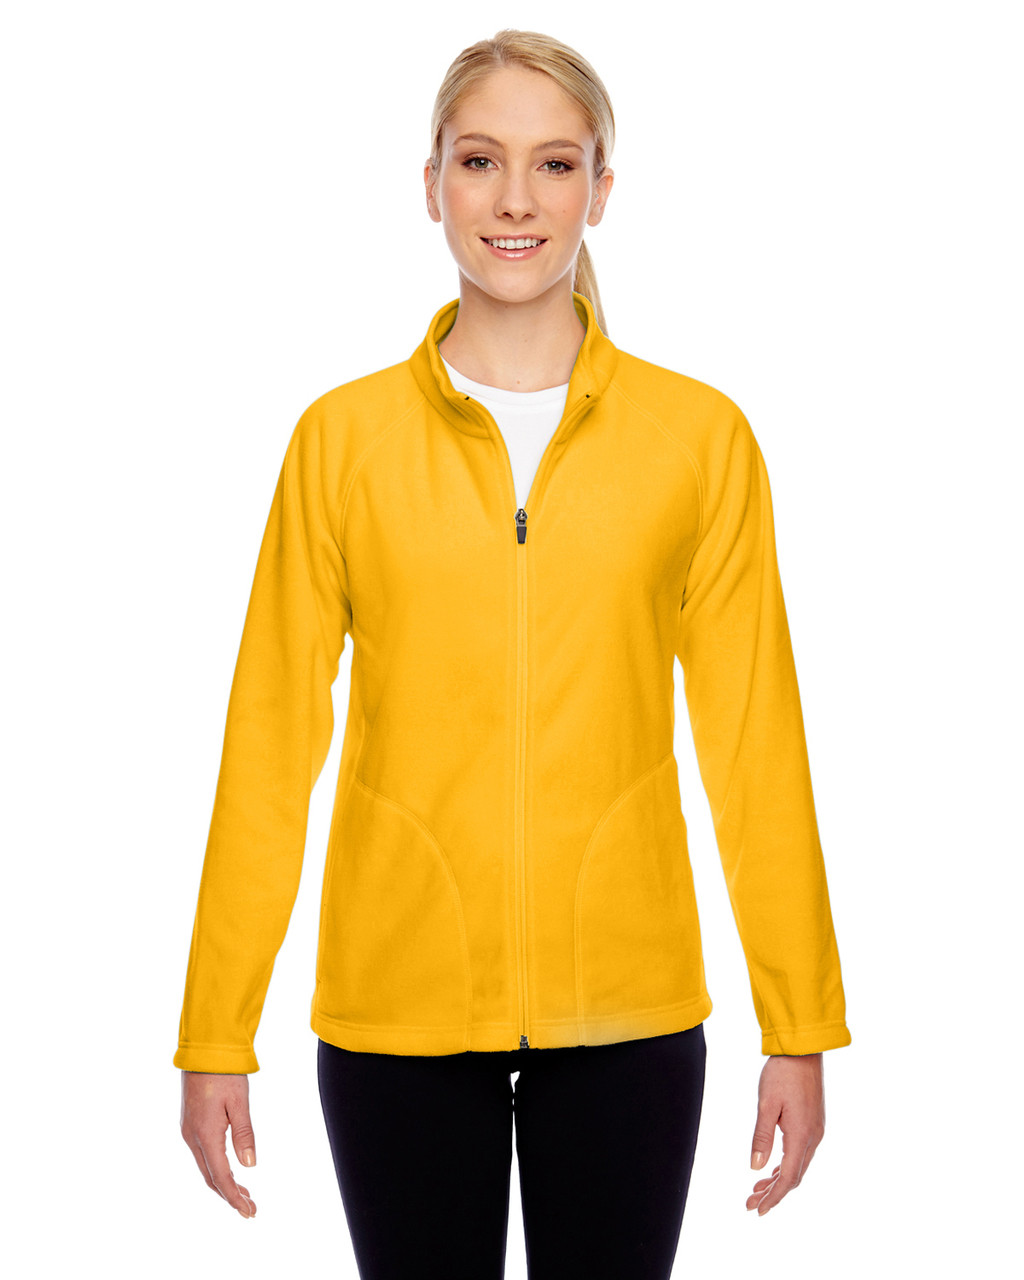 Athletic Gold - TT90W Team 365 Ladies' Campus Microfleece Jacket | BlankClothing.ca